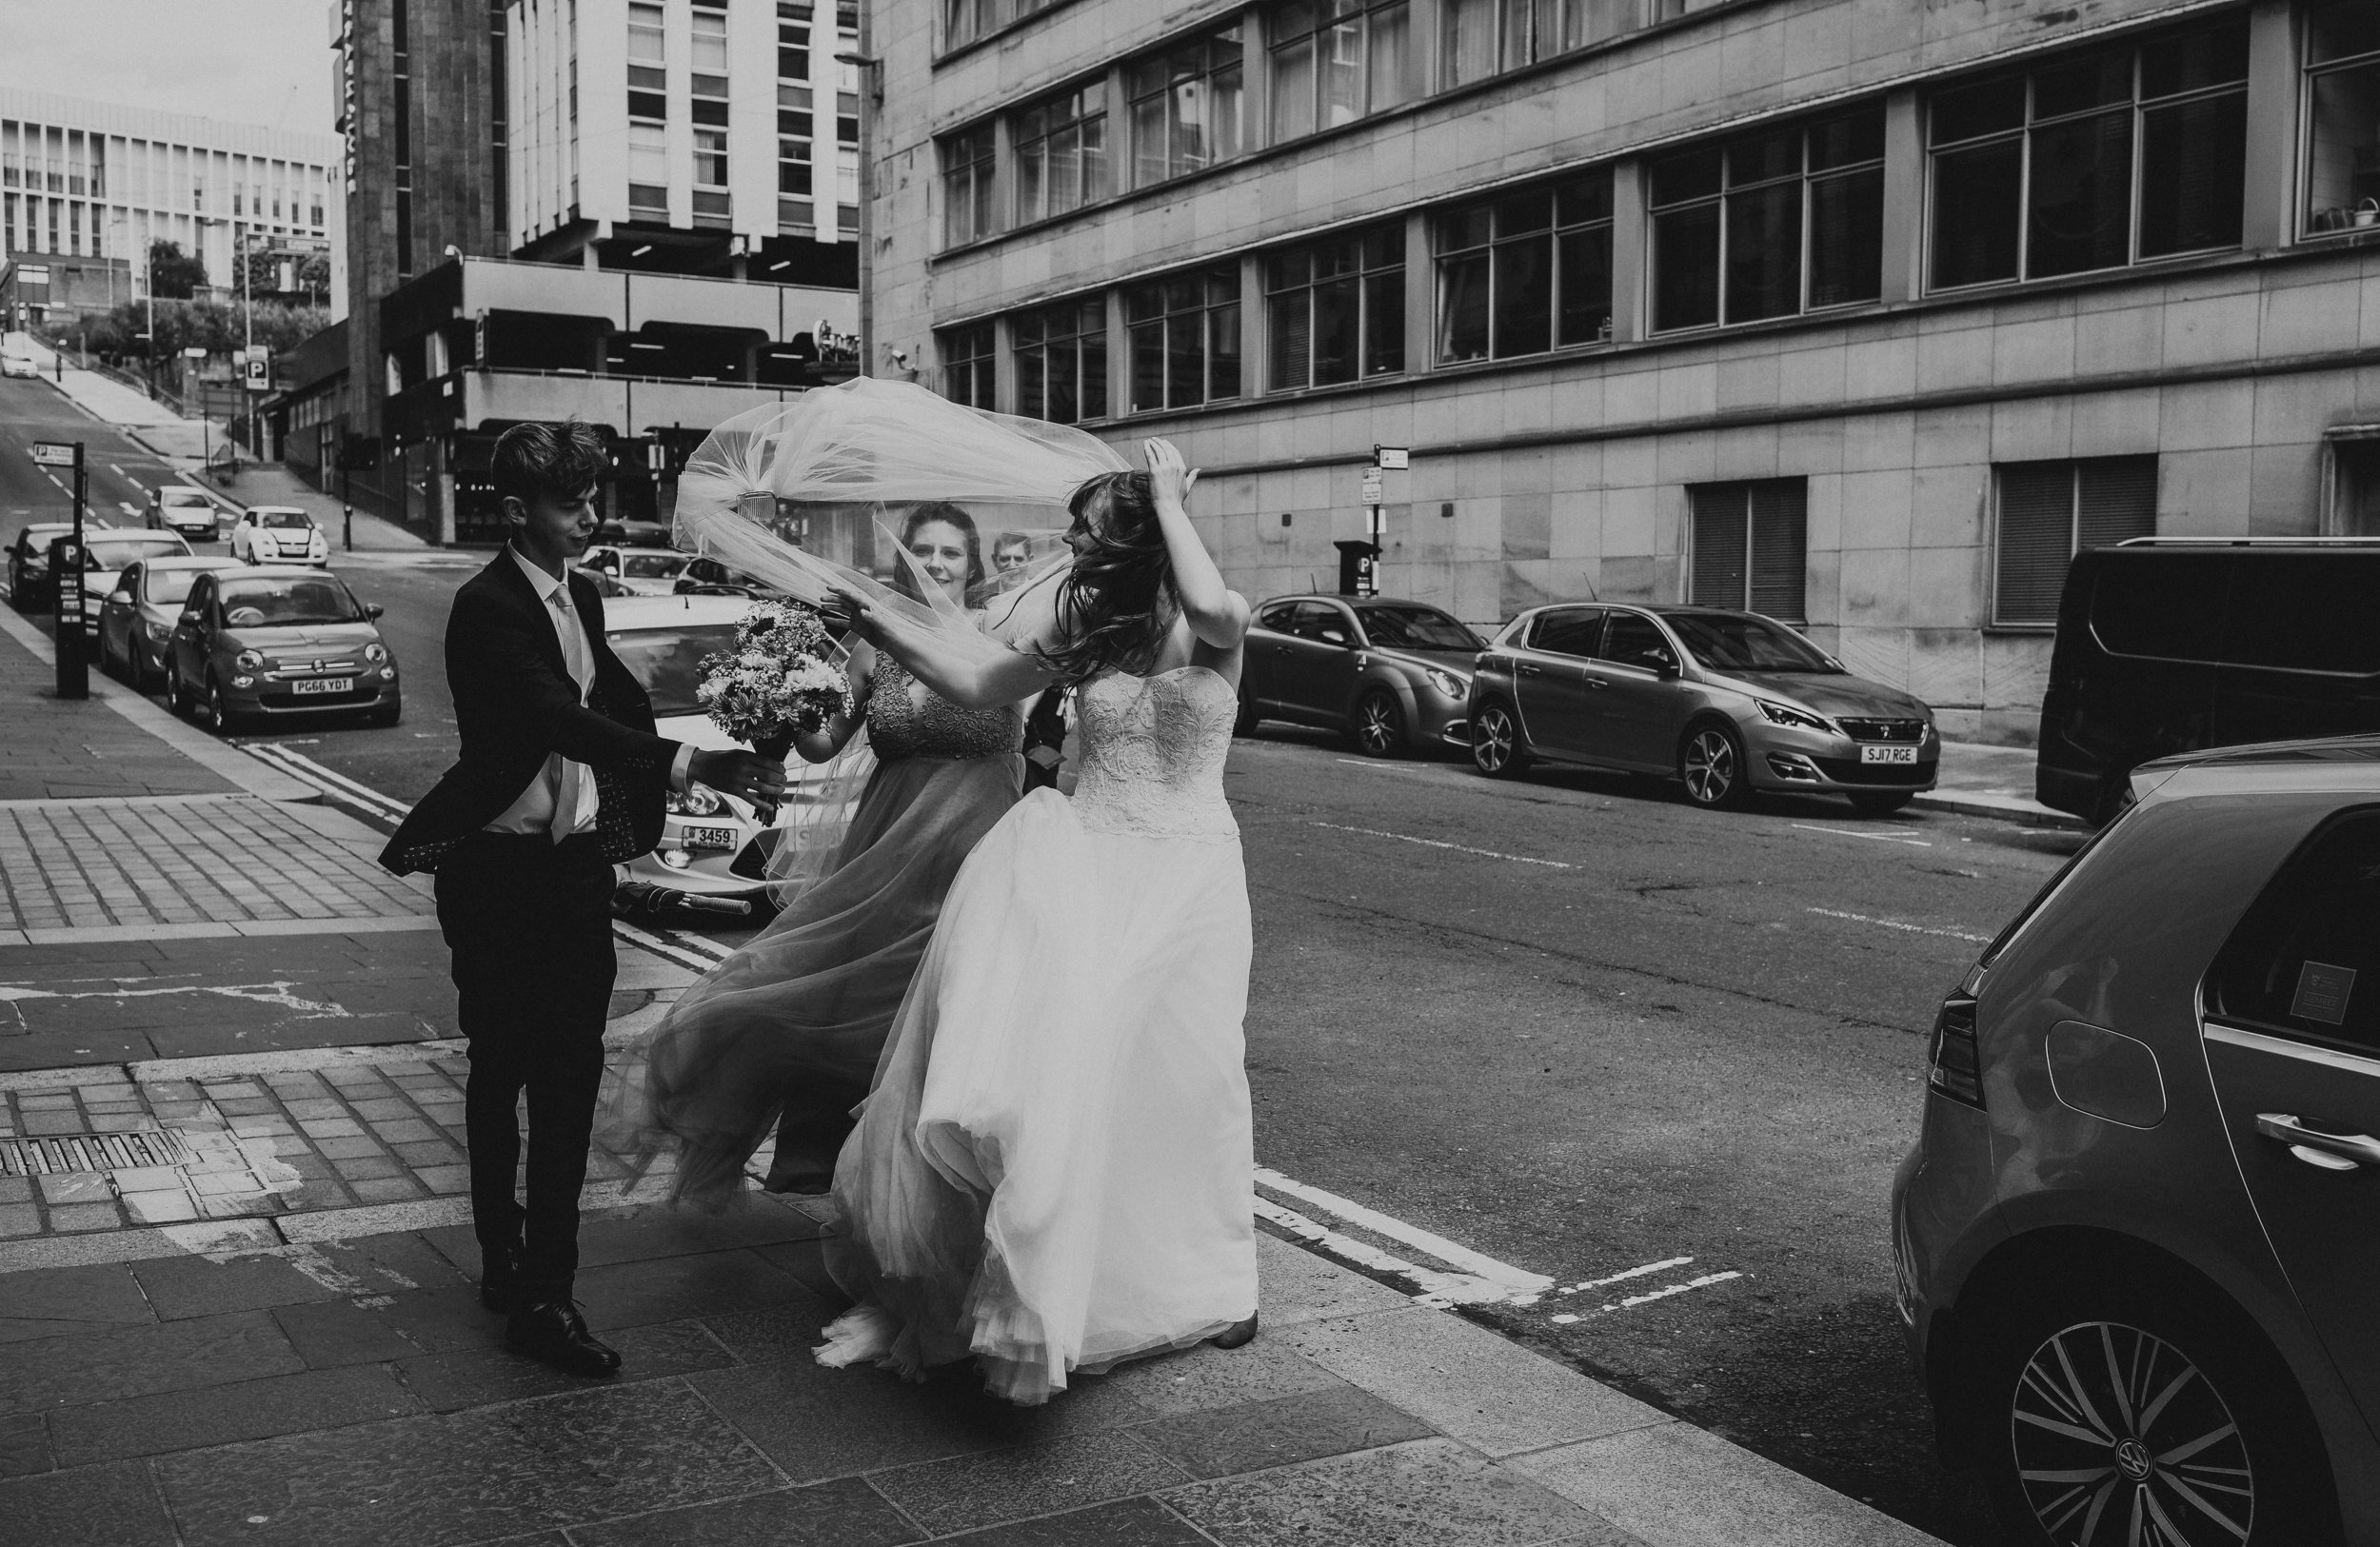 ALTERNATIVE_GLASGOW_CITY_WEDDING_PJ_PHILLIPS_PHOTOGRAPHY_WEDDING_PHOTOGRAPHY_36.jpg